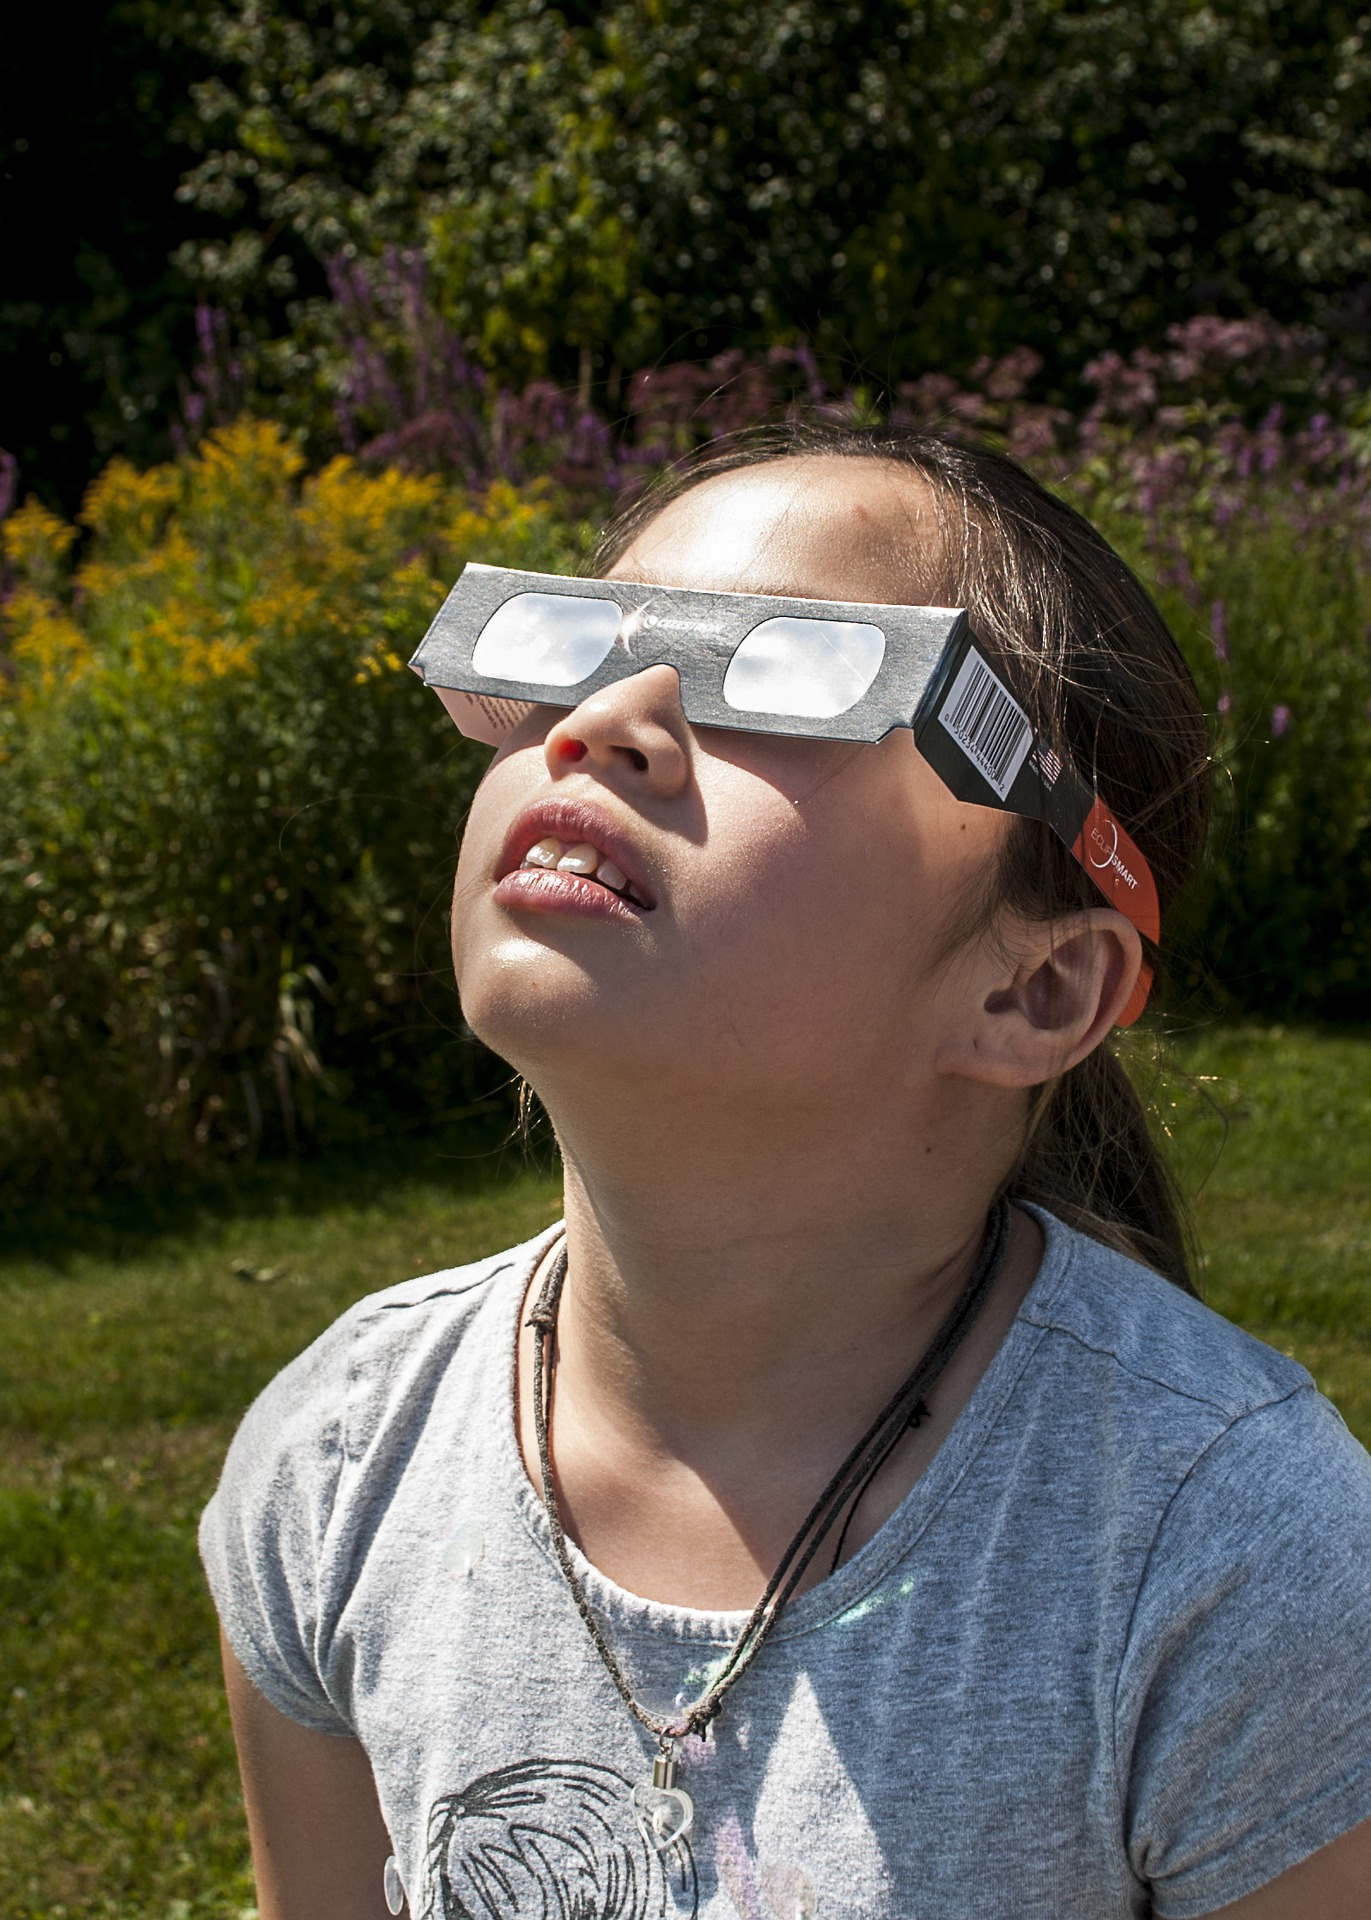 young girl looking at the solar eclipse with protective eye wear